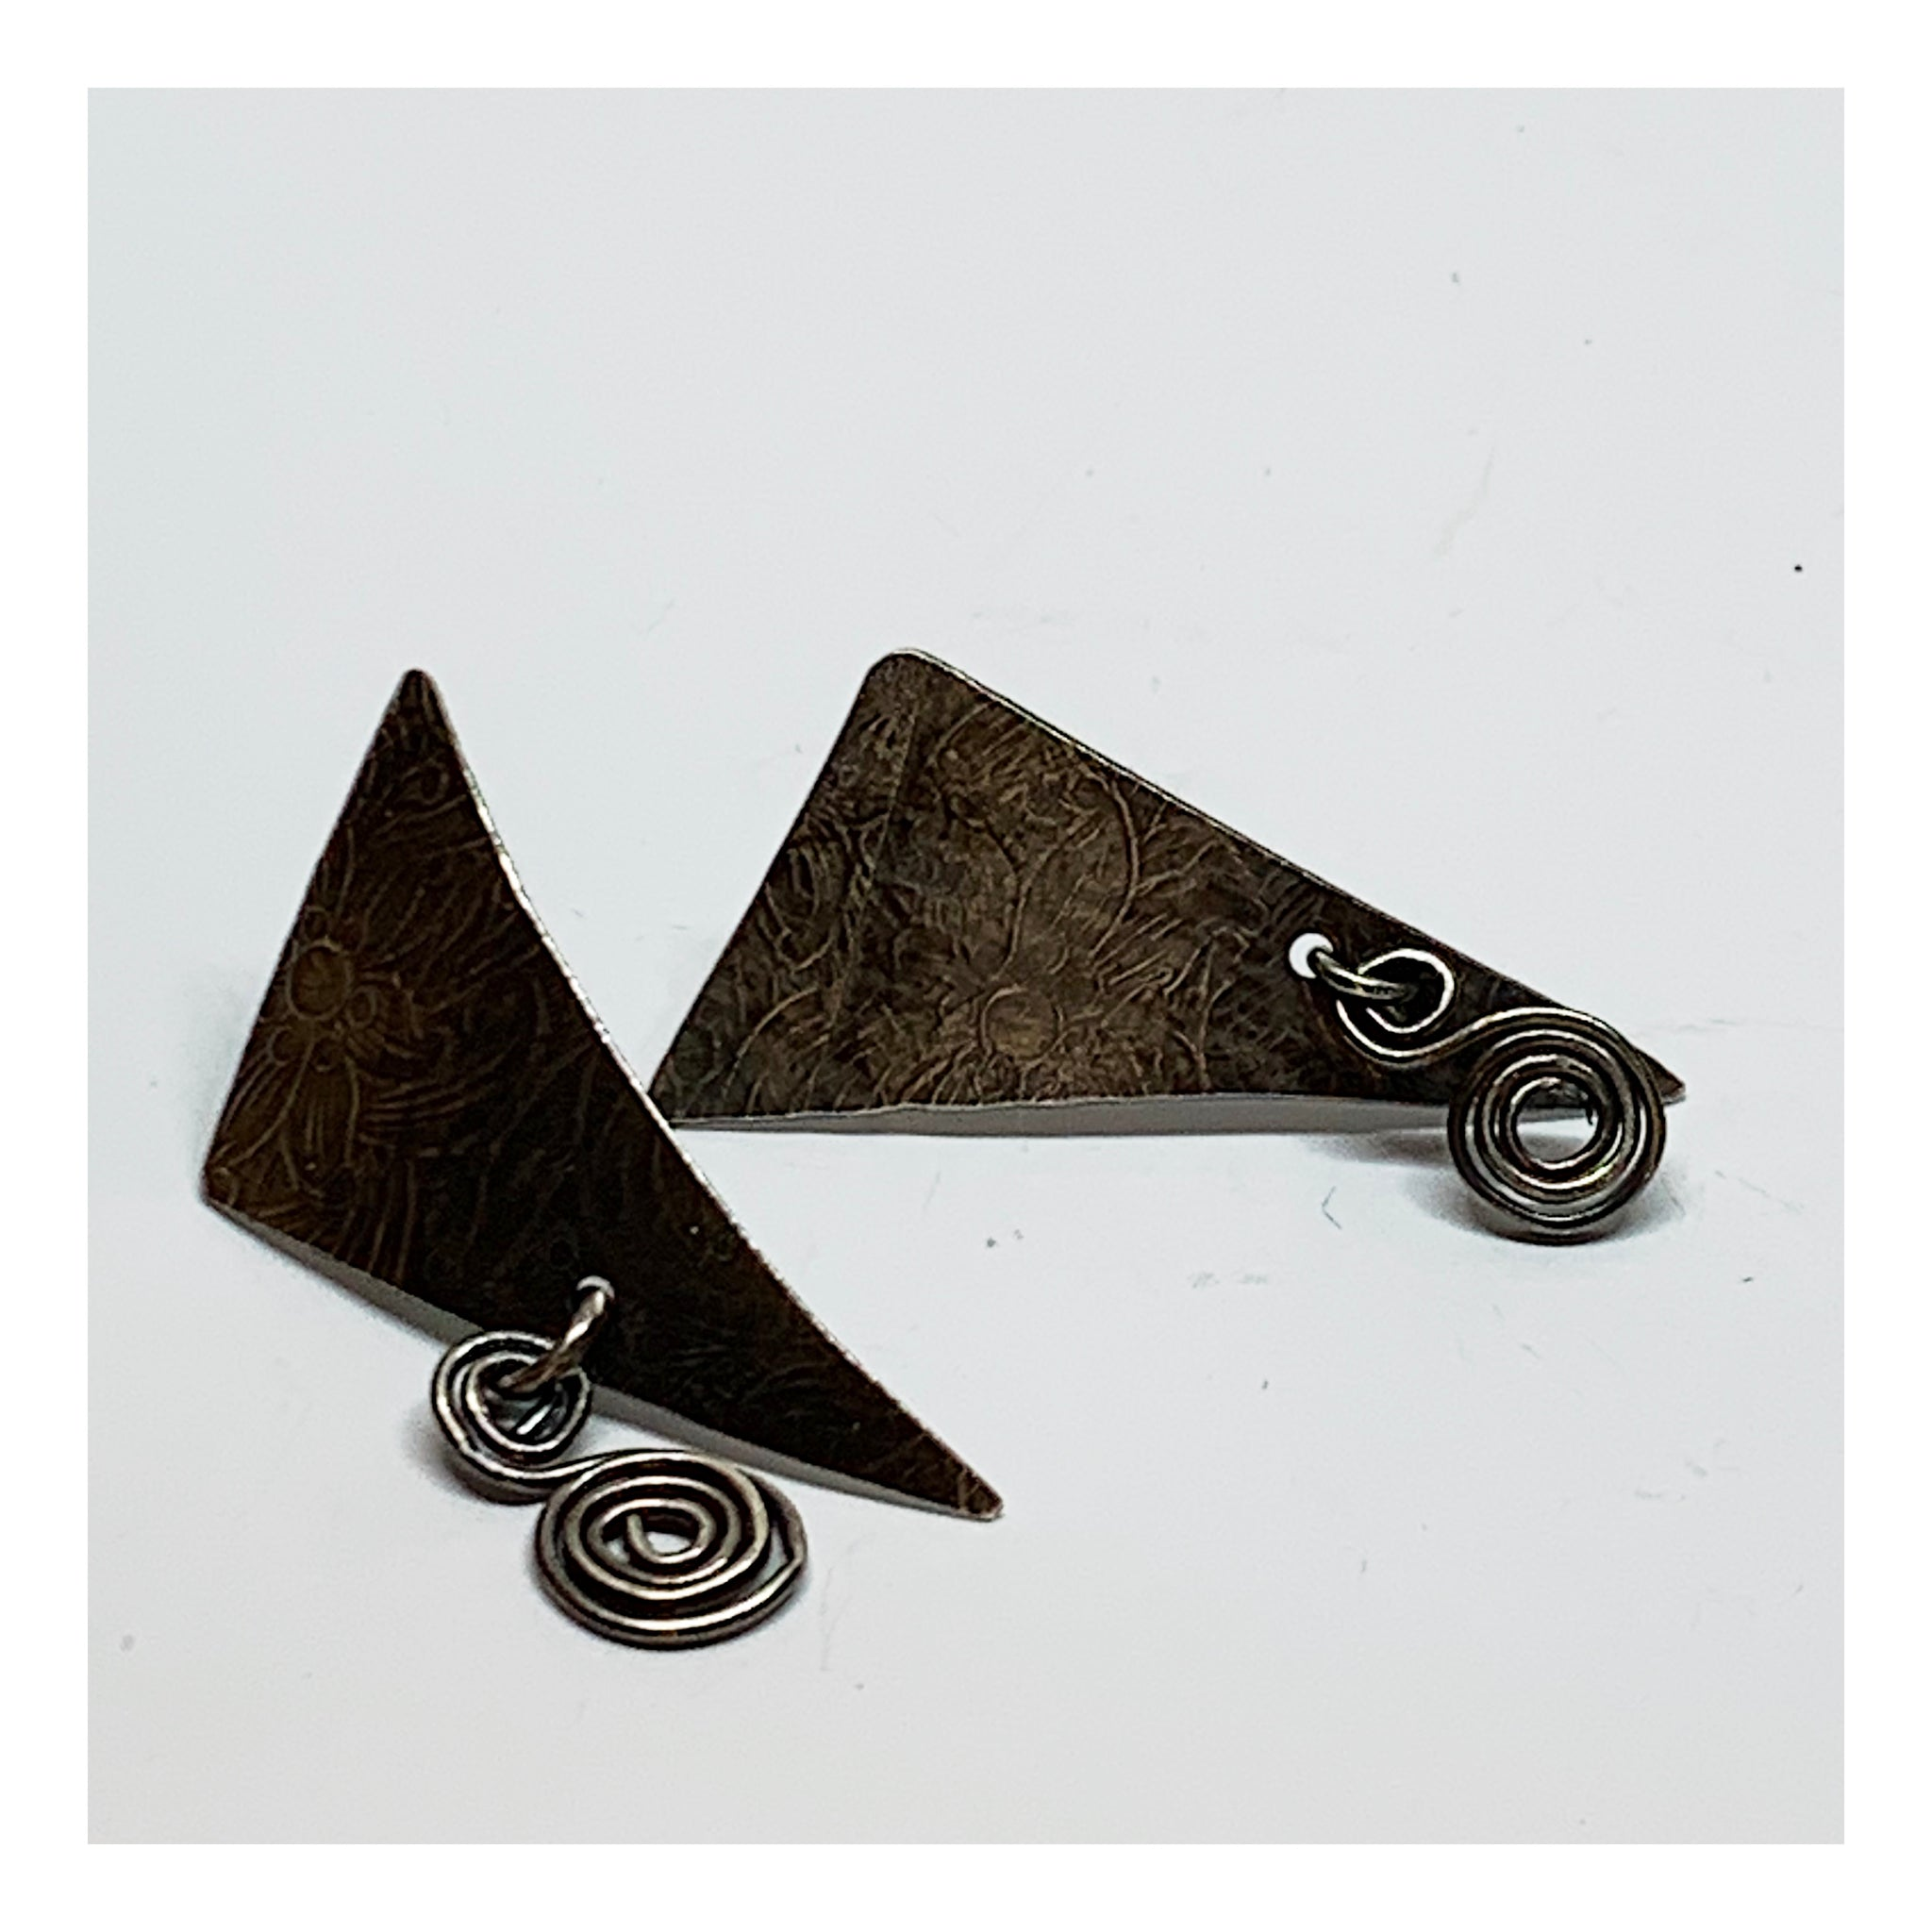 Triangular Bohemian Sterling Silver Earrings - Unique One of a Kind Jewelry